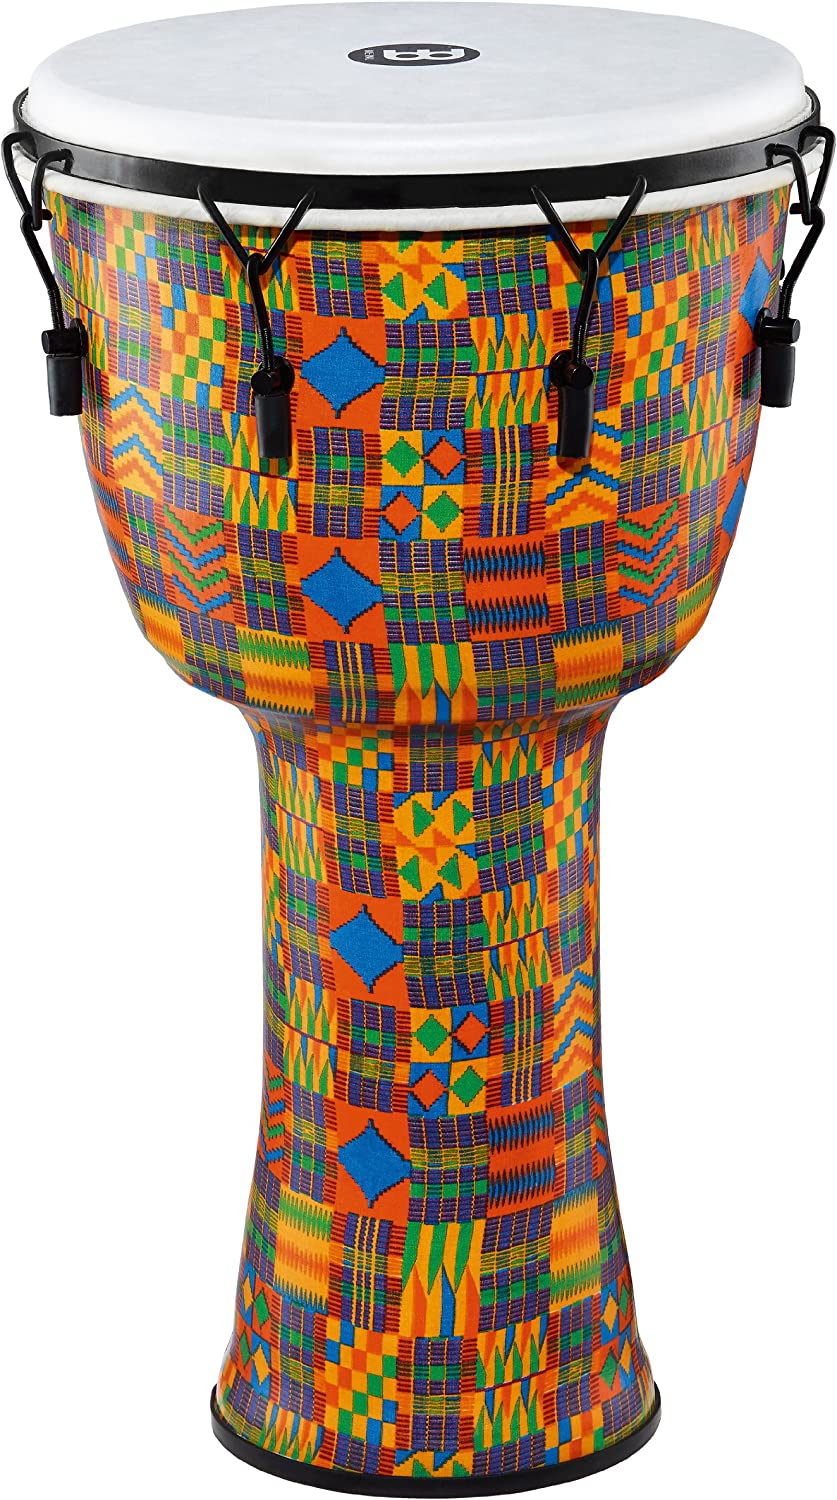 Meinl Percussion Travel Djembe with Synthetic Shell and Head-NOT Made in CHINA-14 Extra Large Size Mechanically Tuned Kenyan Quilt 2-Year Warranty XL 14 PMDJ2-XL-F